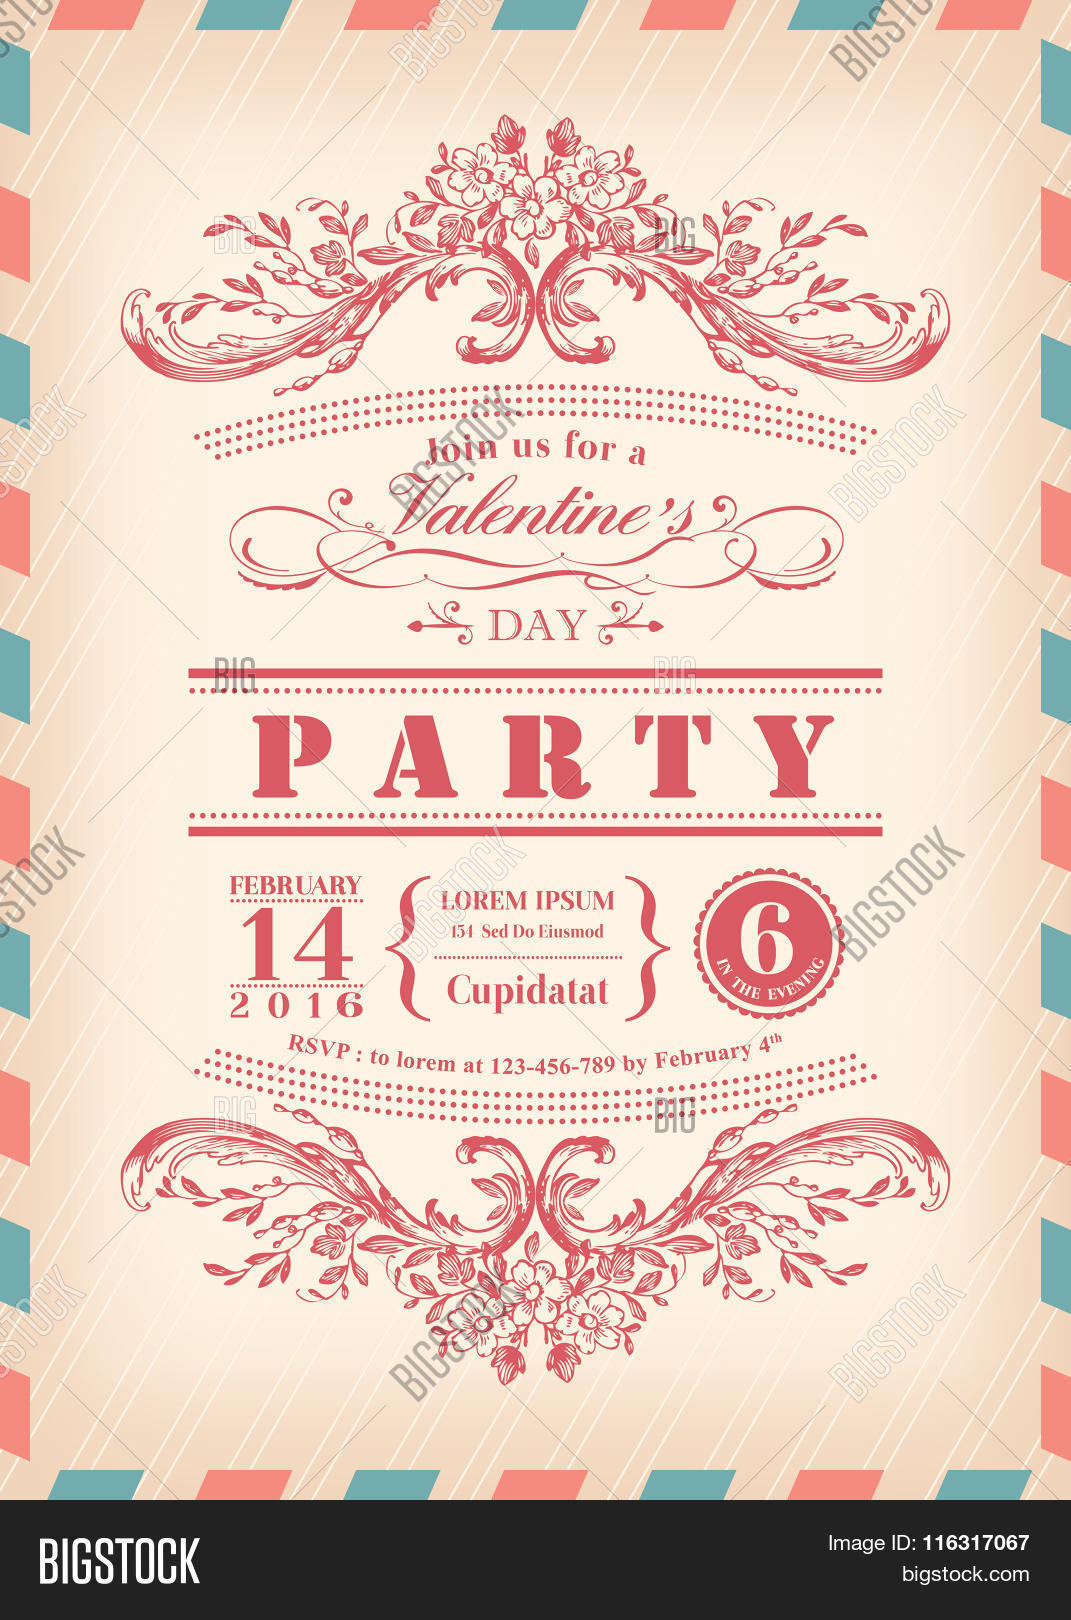 Valentine Day Card Party Vector & Photo | Bigstock